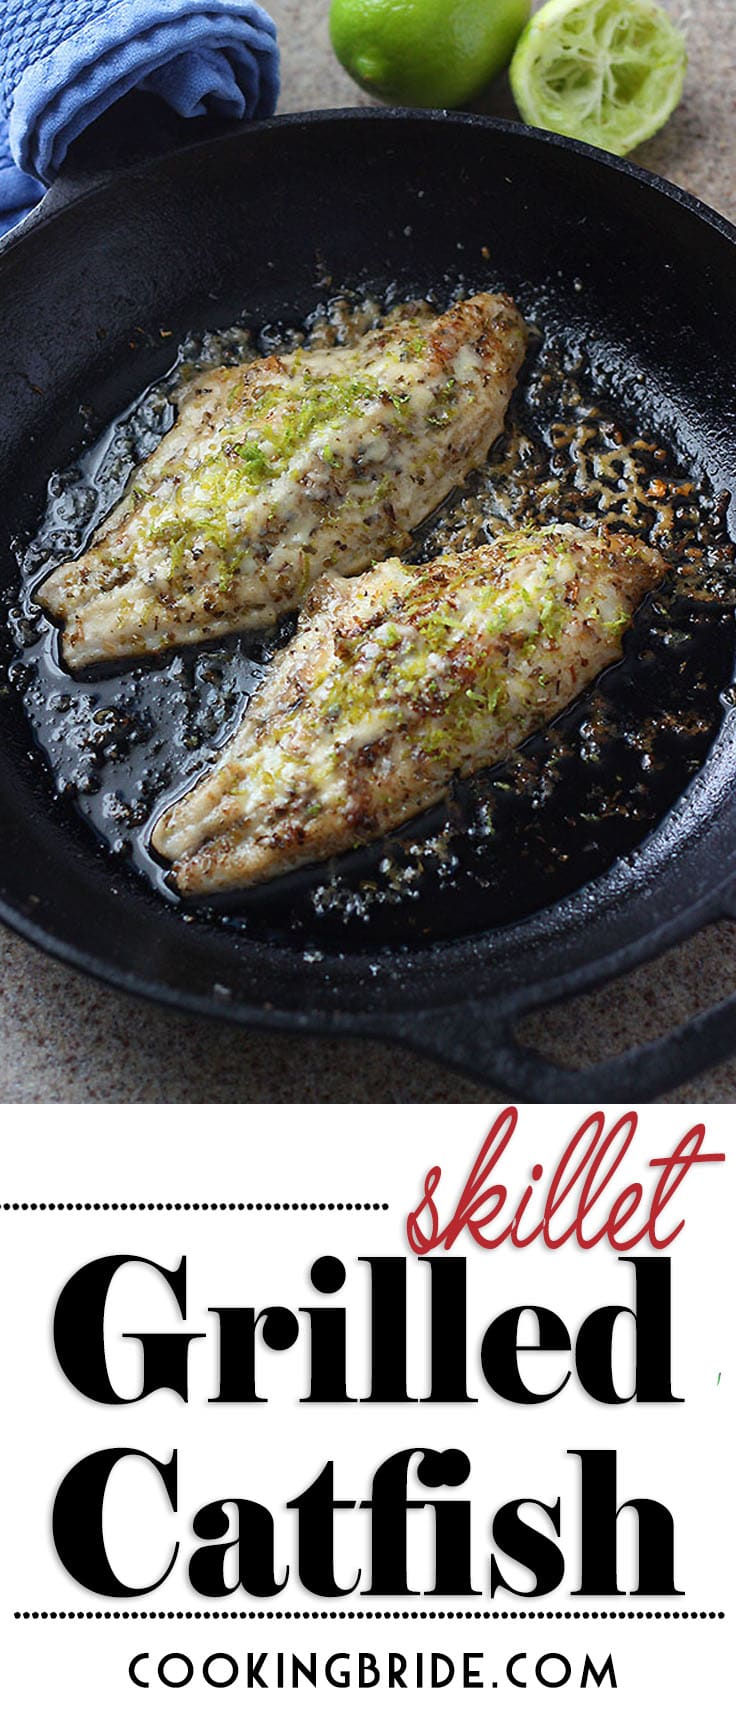 Looking for low carb dinner options? Try this skillet grilled catfish recipe that is full of flavor and easy enough for a weeknight meal. #Catfish #FishDinner #LowCarb